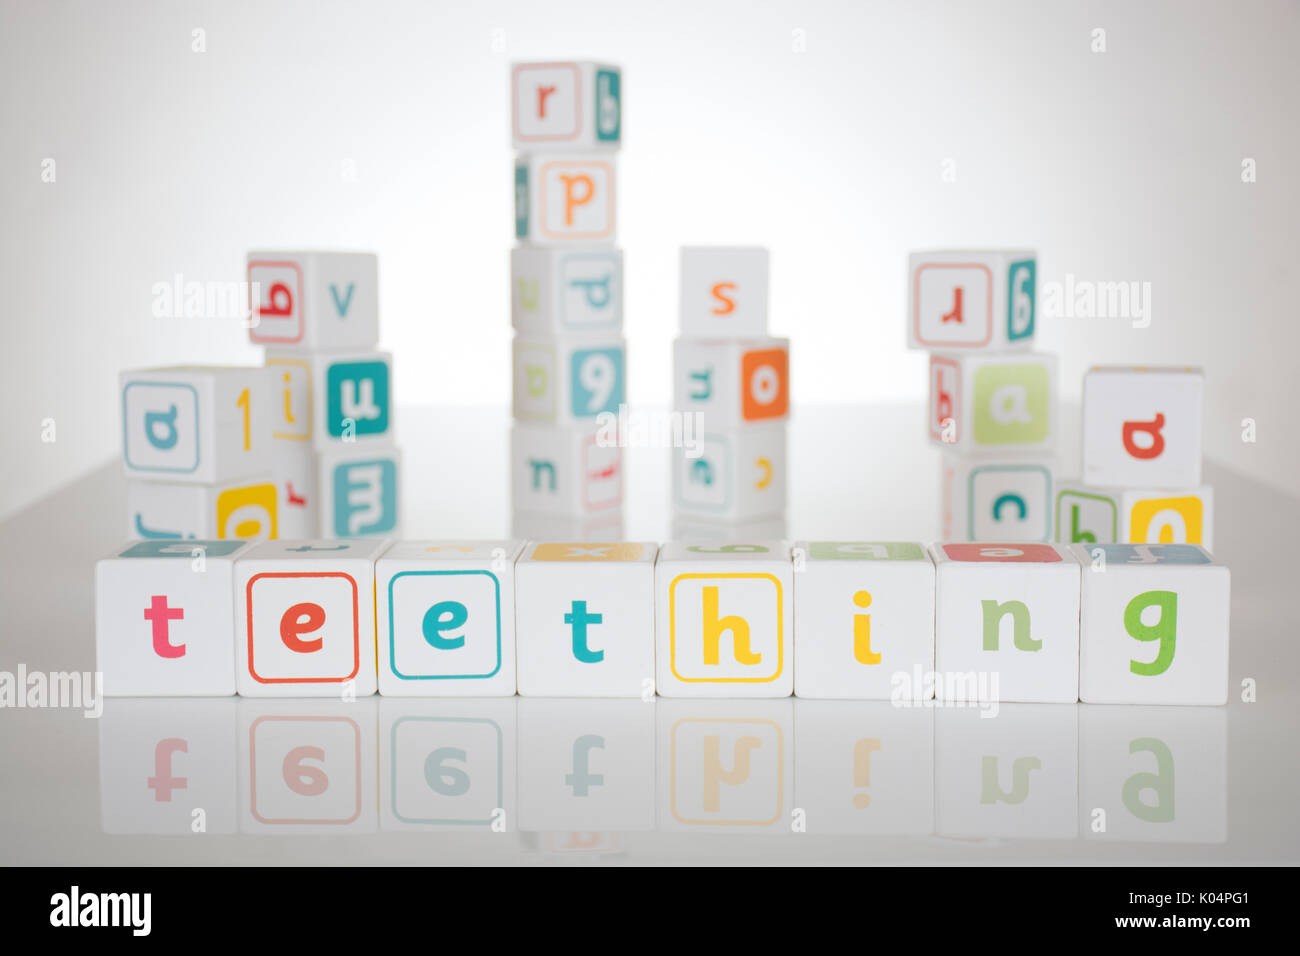 Teething spelled out in toy building blocks - Stock Image